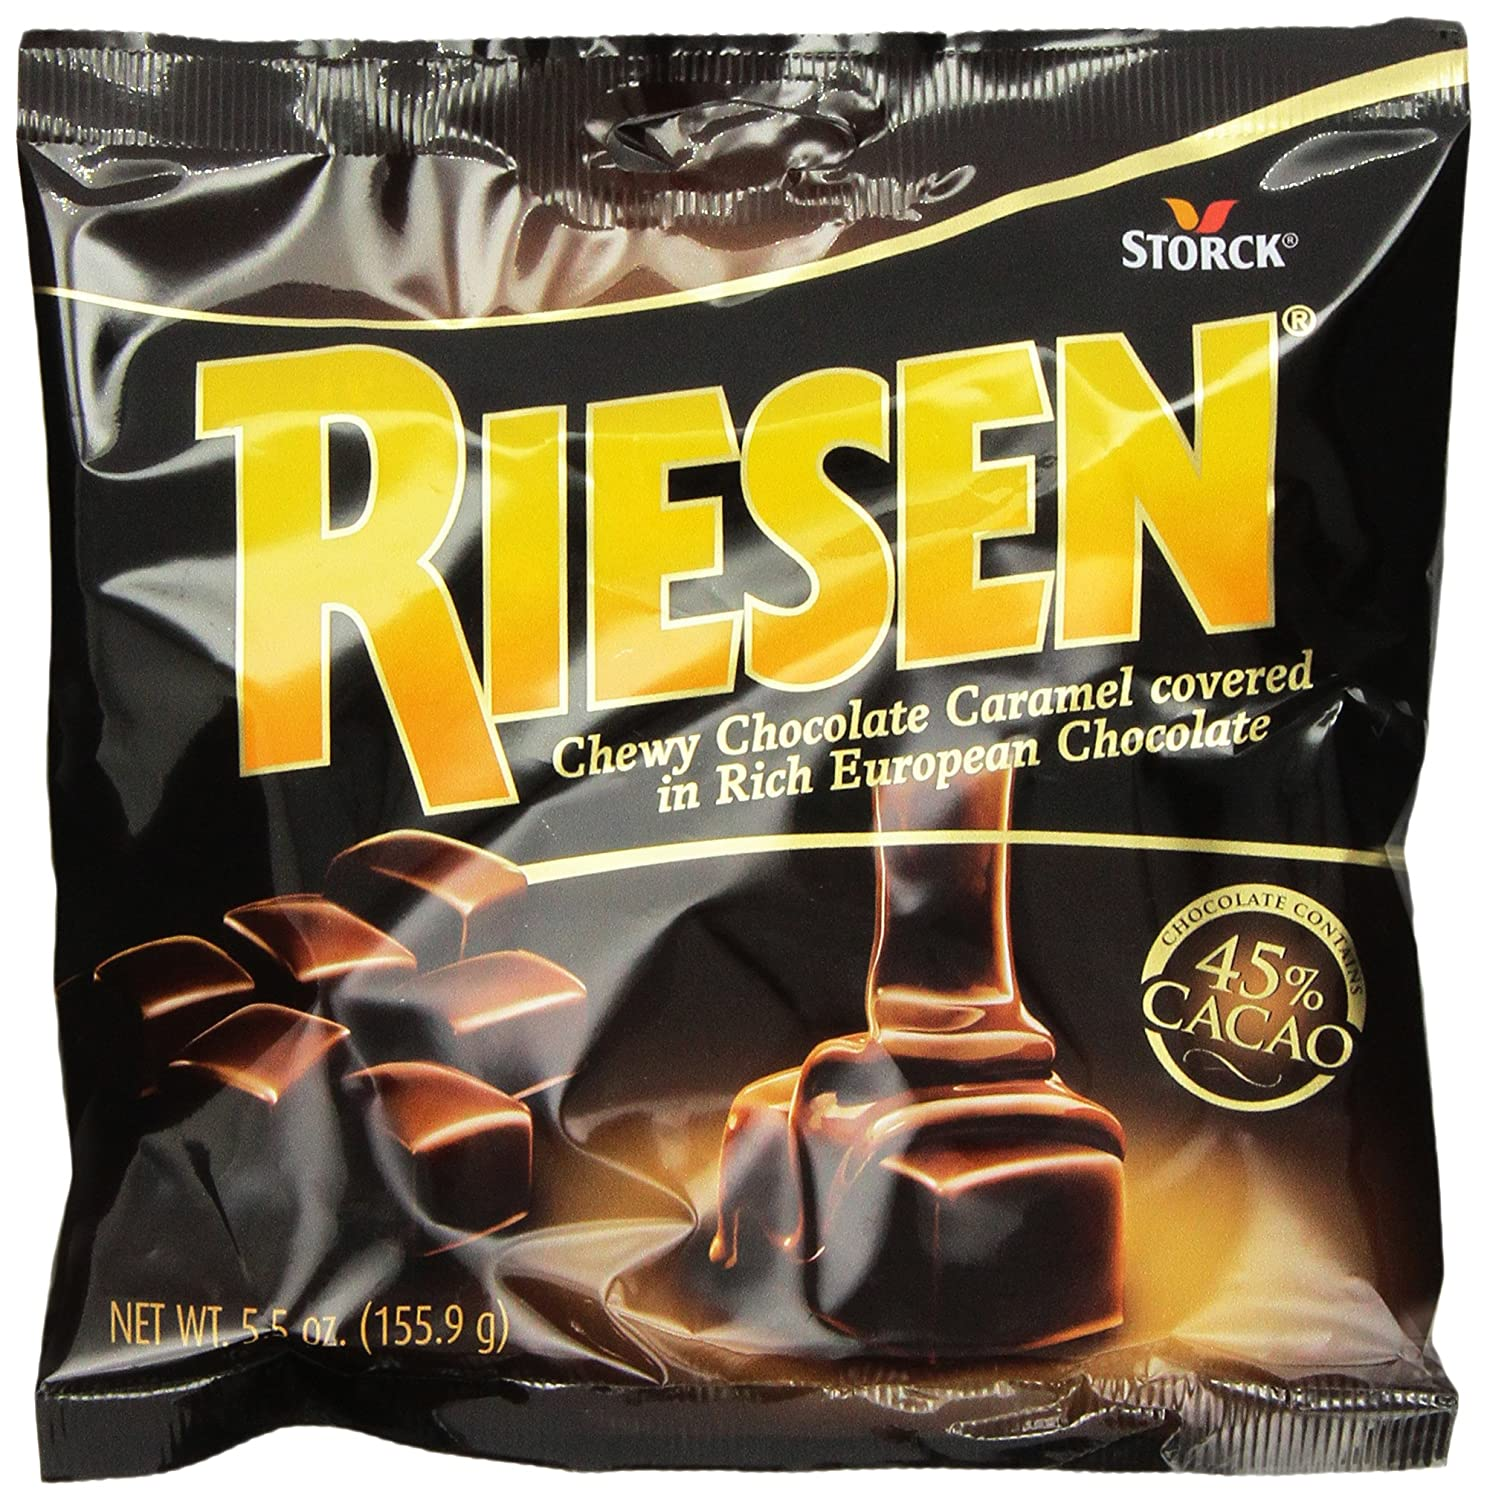 RIESEN Chewy Dark Chocolate Caramel Candy, 5.5-Ounce Bags (Pack of 12), Individually Wrapped Candy, Bulk Candy, Chocolate Candy, Bag of Candy, Sweets for Home, Road Trips or Parties, Great Gift Idea